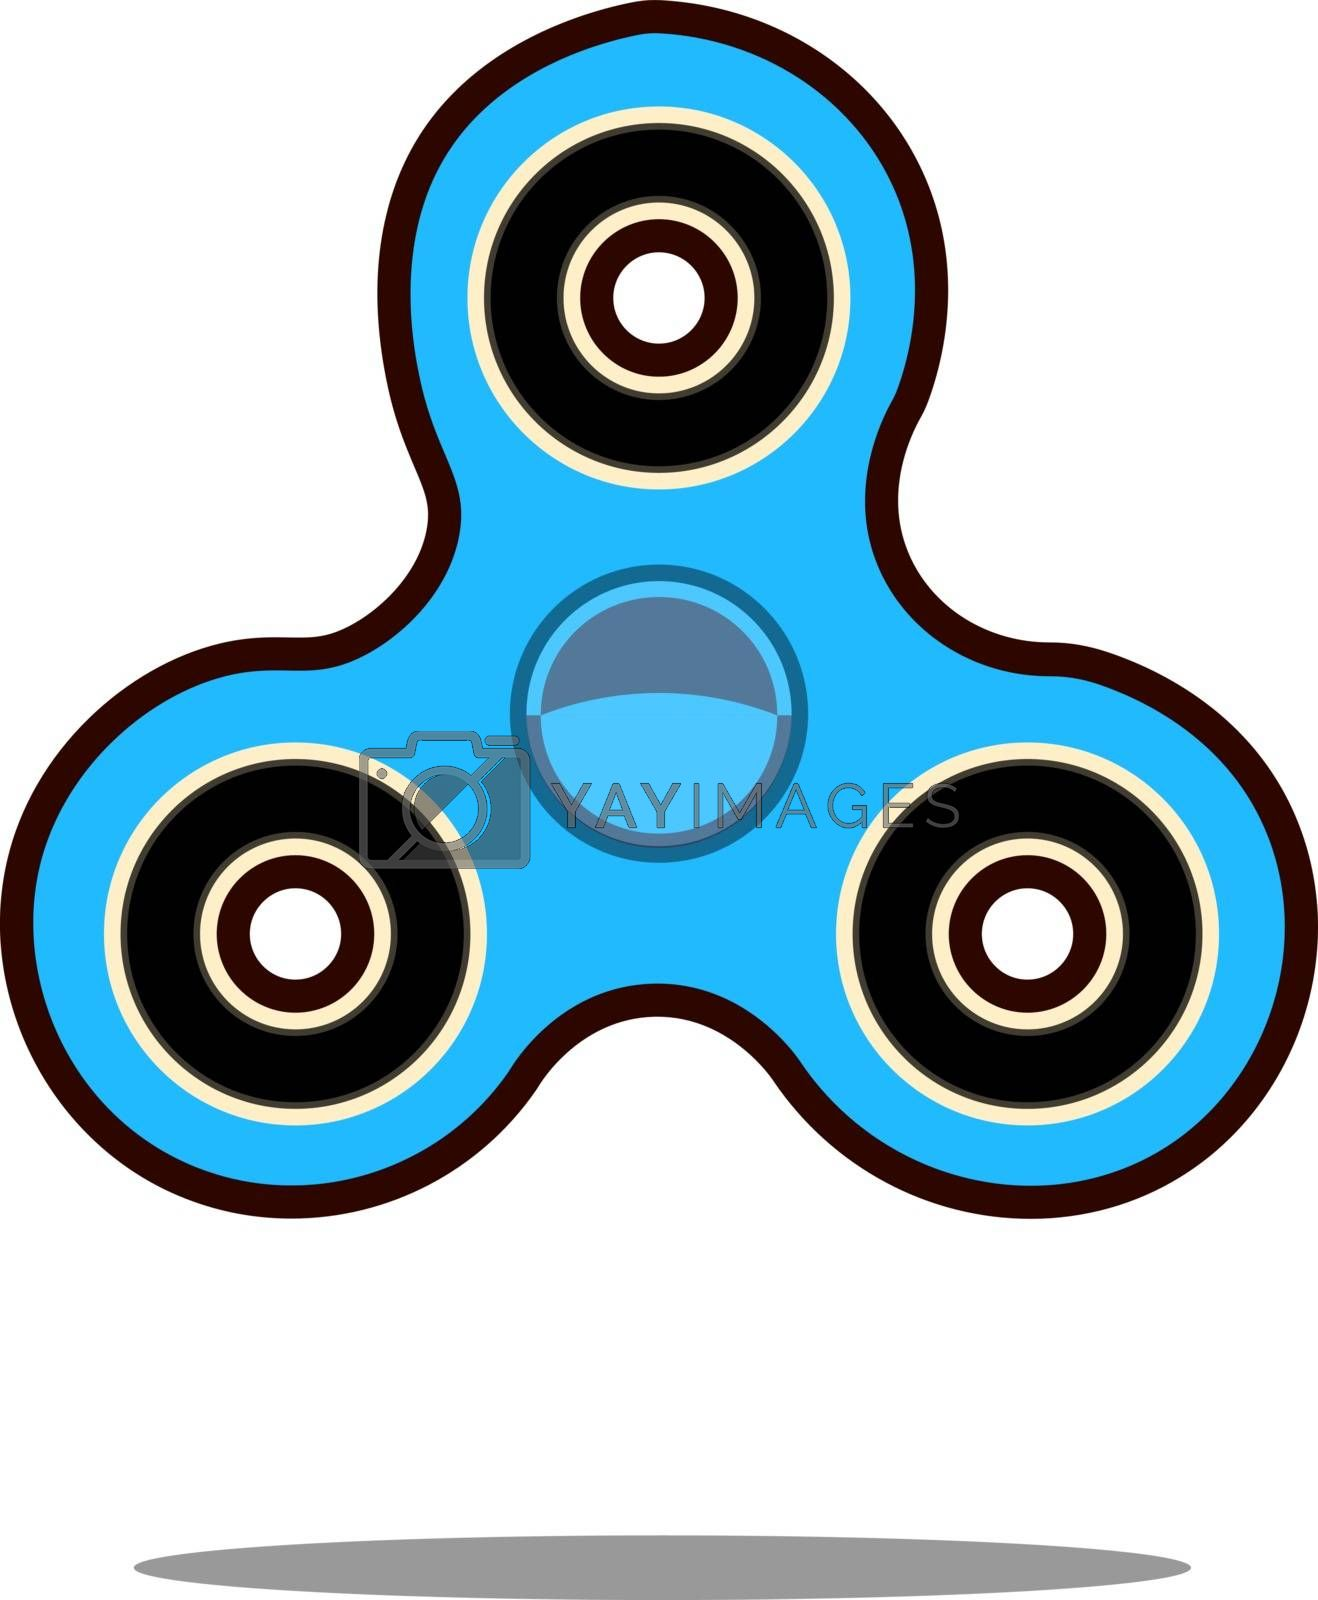 Royalty free image of Hand spinner flat vector illustration. Hand spinner tricks. Vector illustration isolated on white by Alxyzt